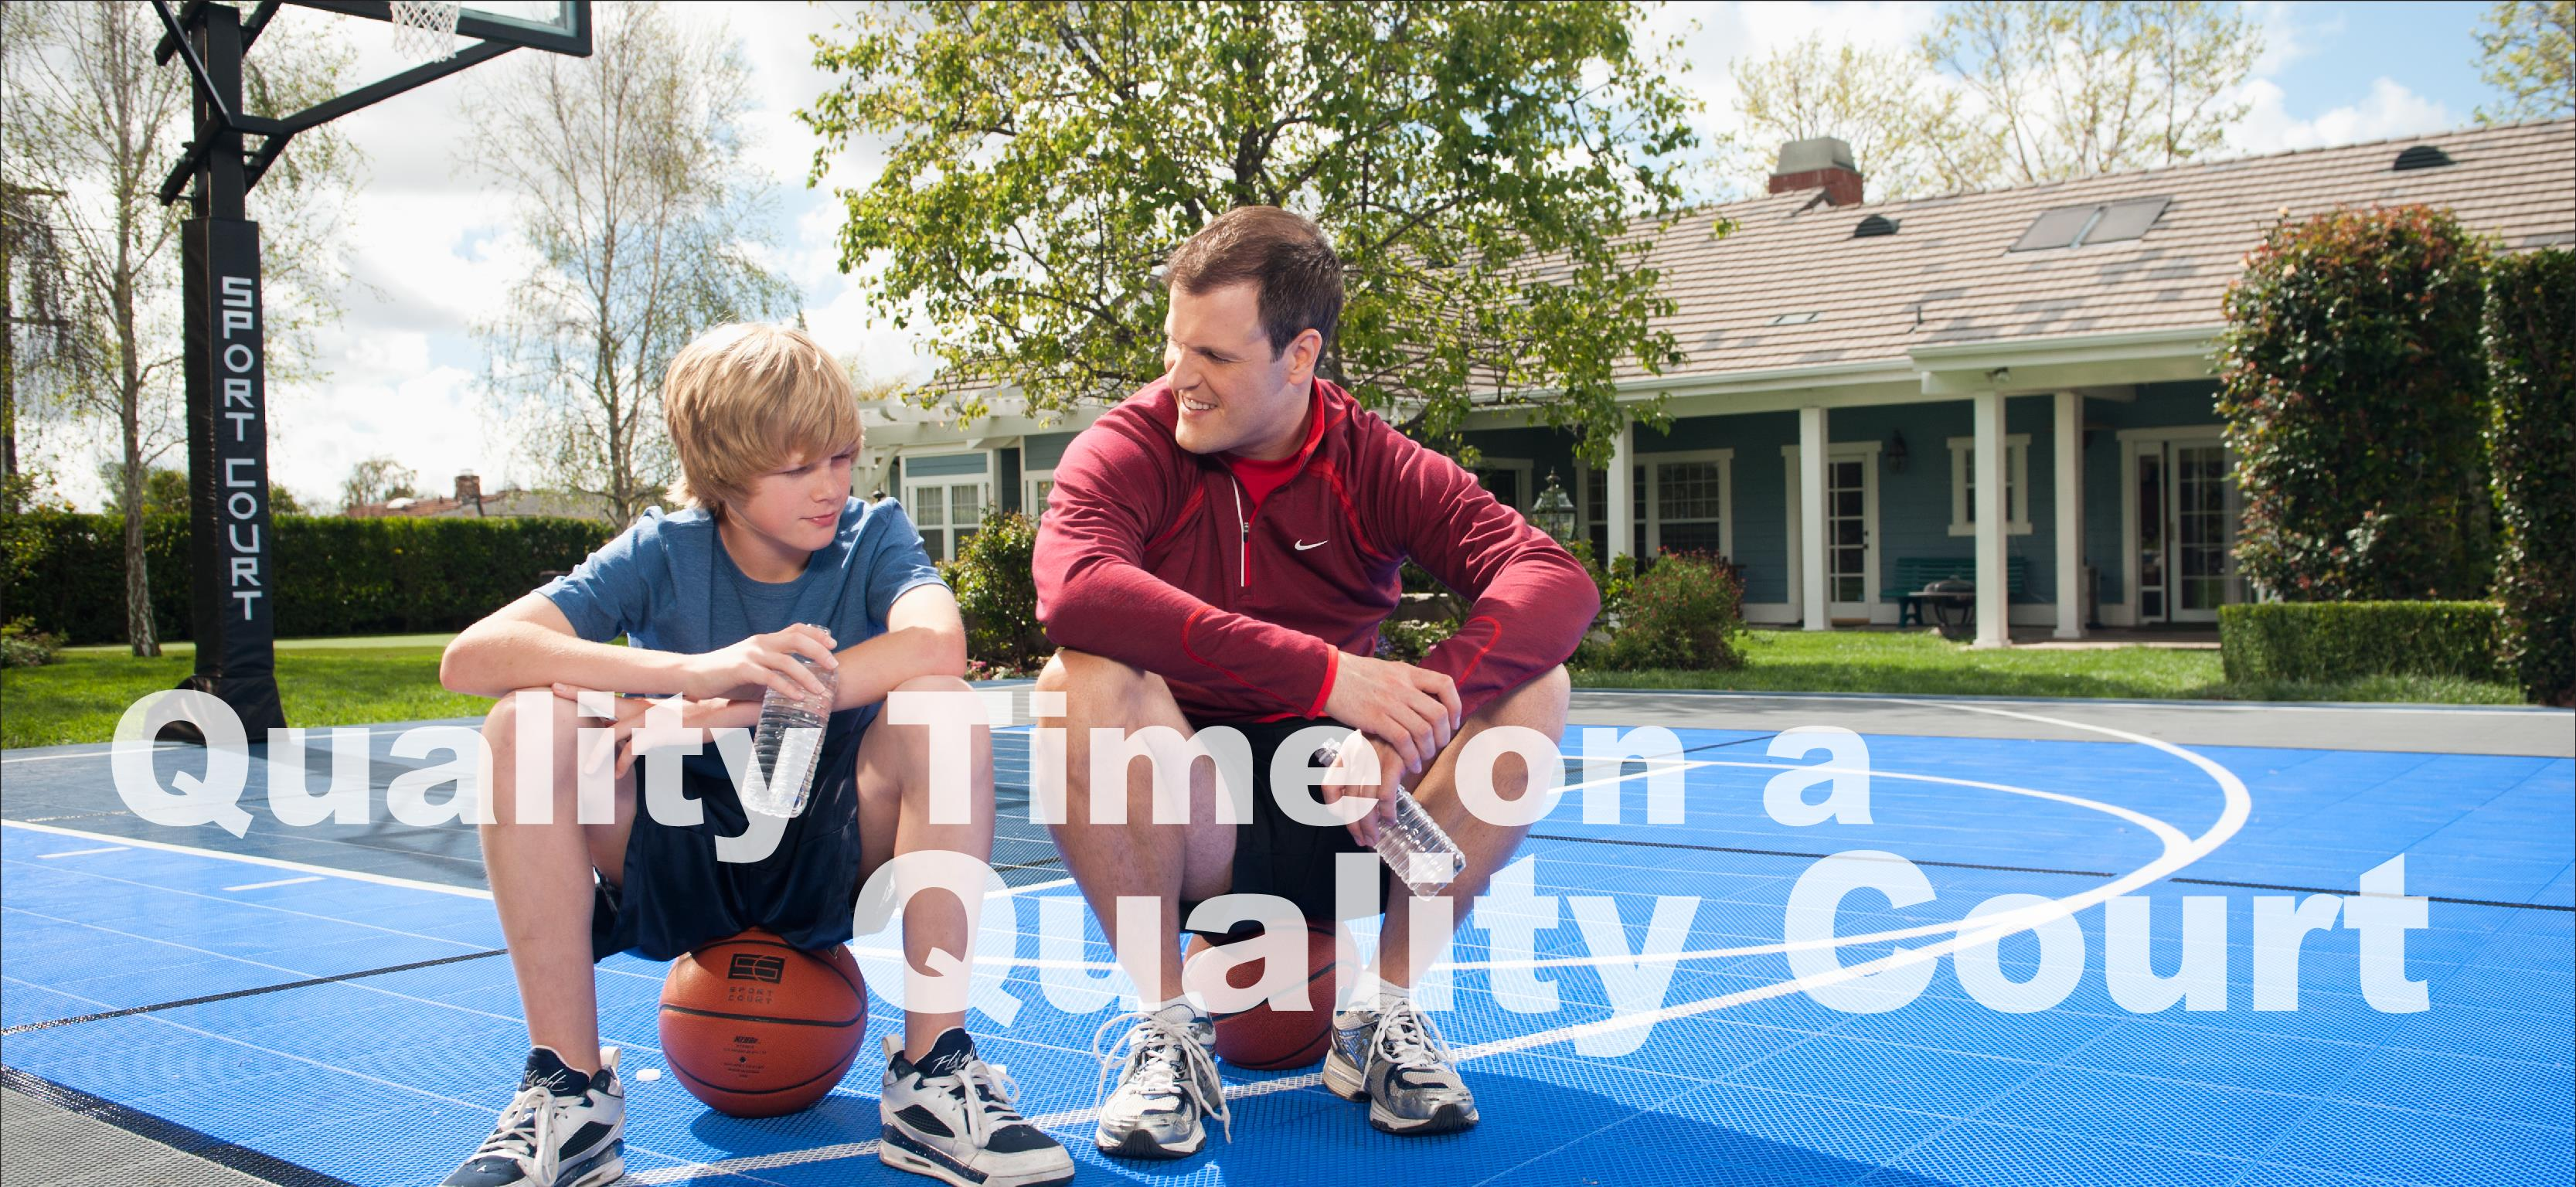 Family Courts by Sport Court